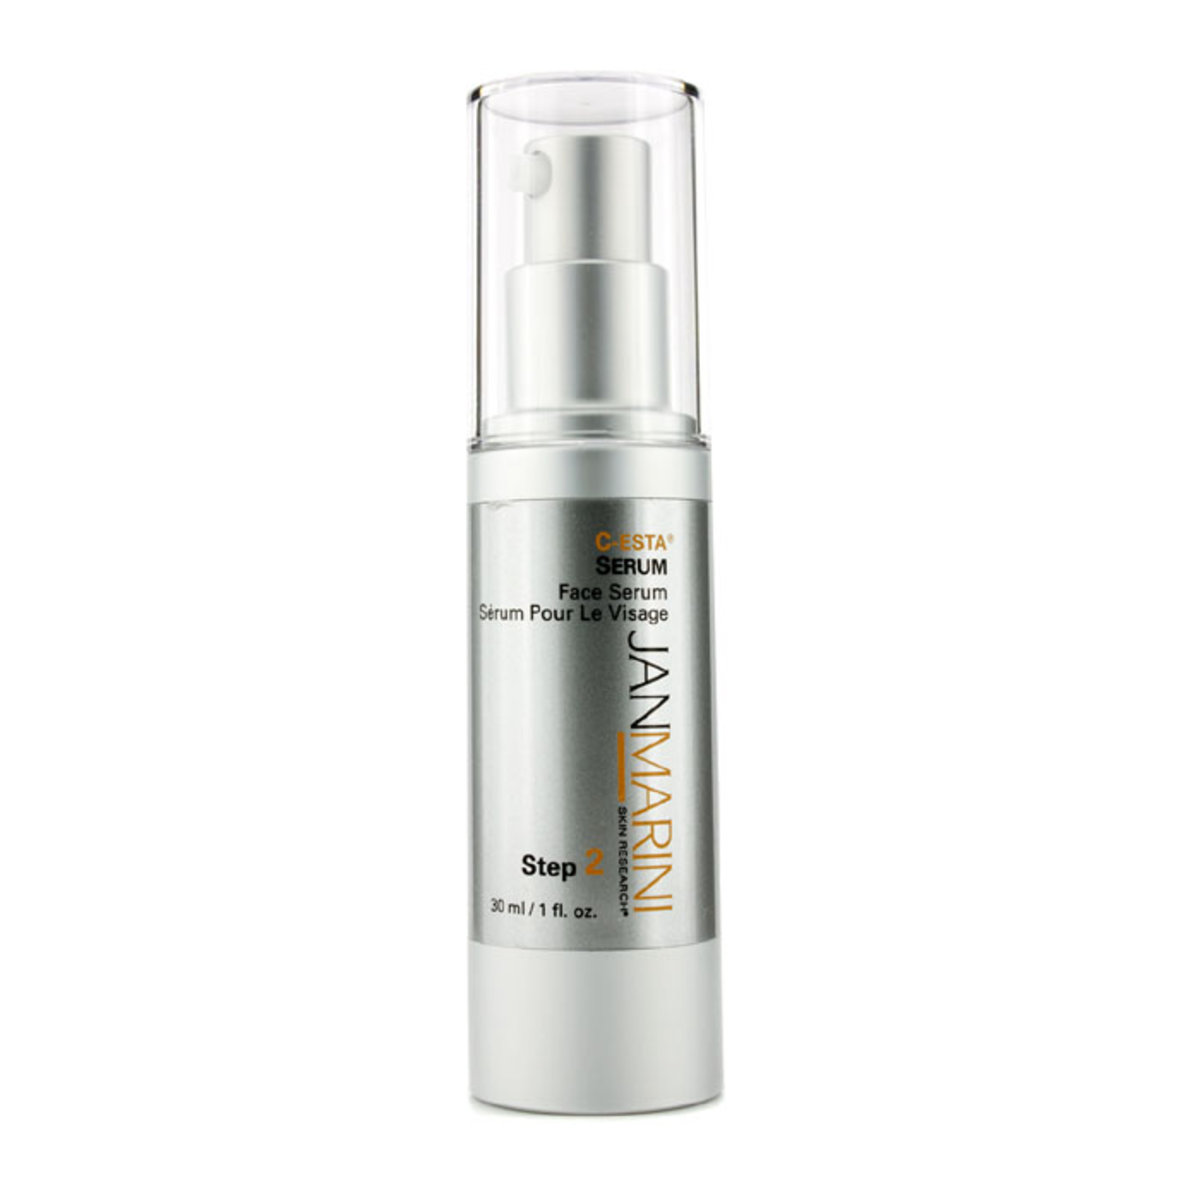 C-Esta Serum  -[Parallel Import Product]